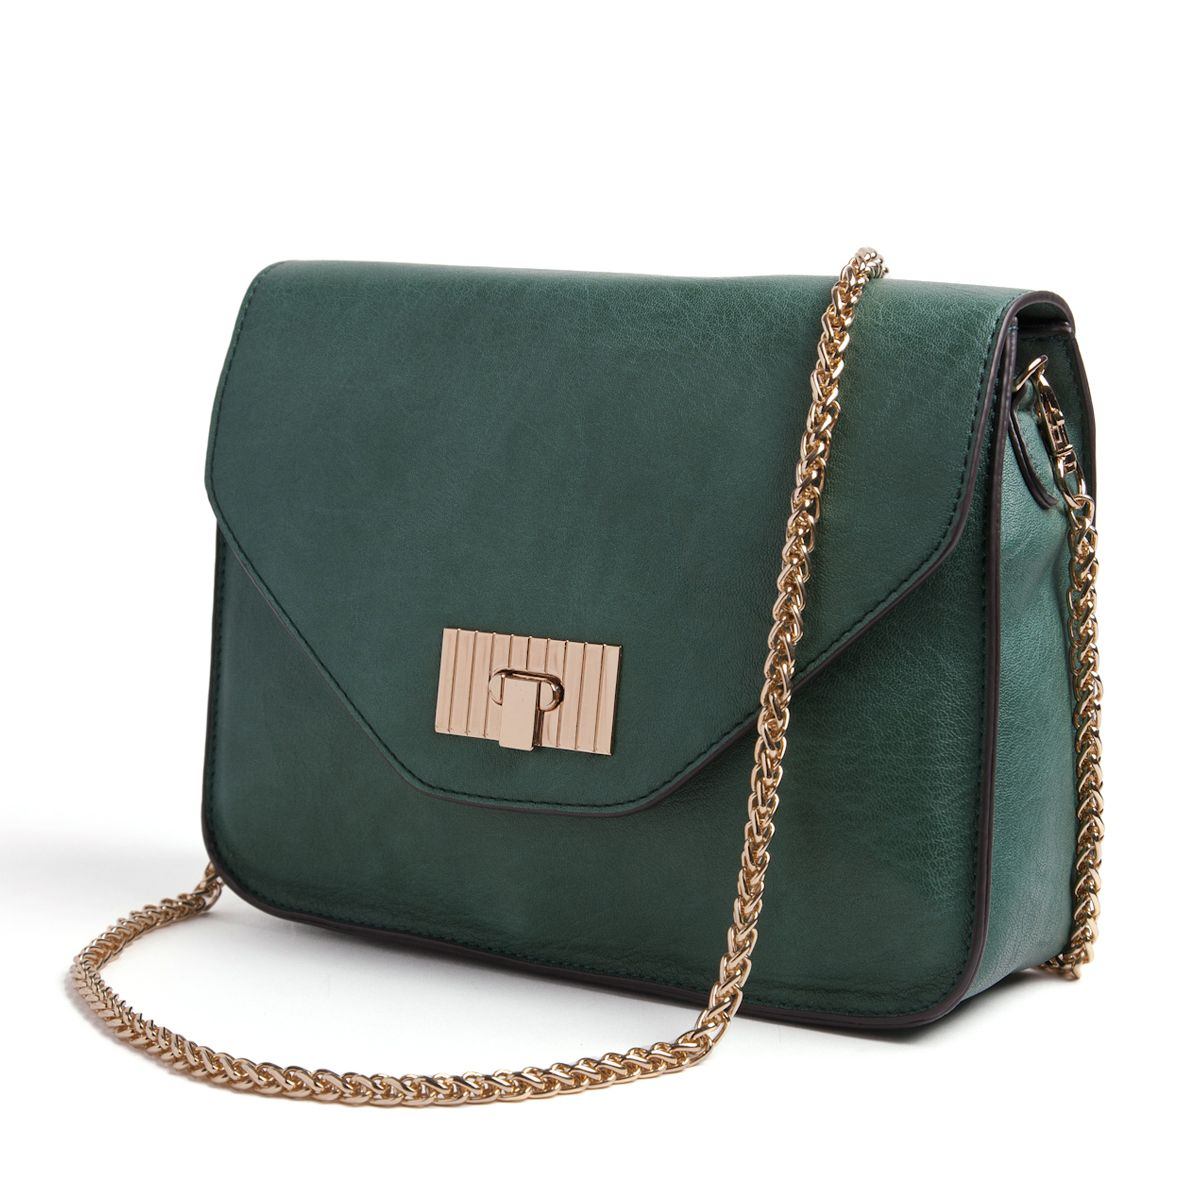 Golden Lock Shoulder Bag by Mayfair. This is adorable